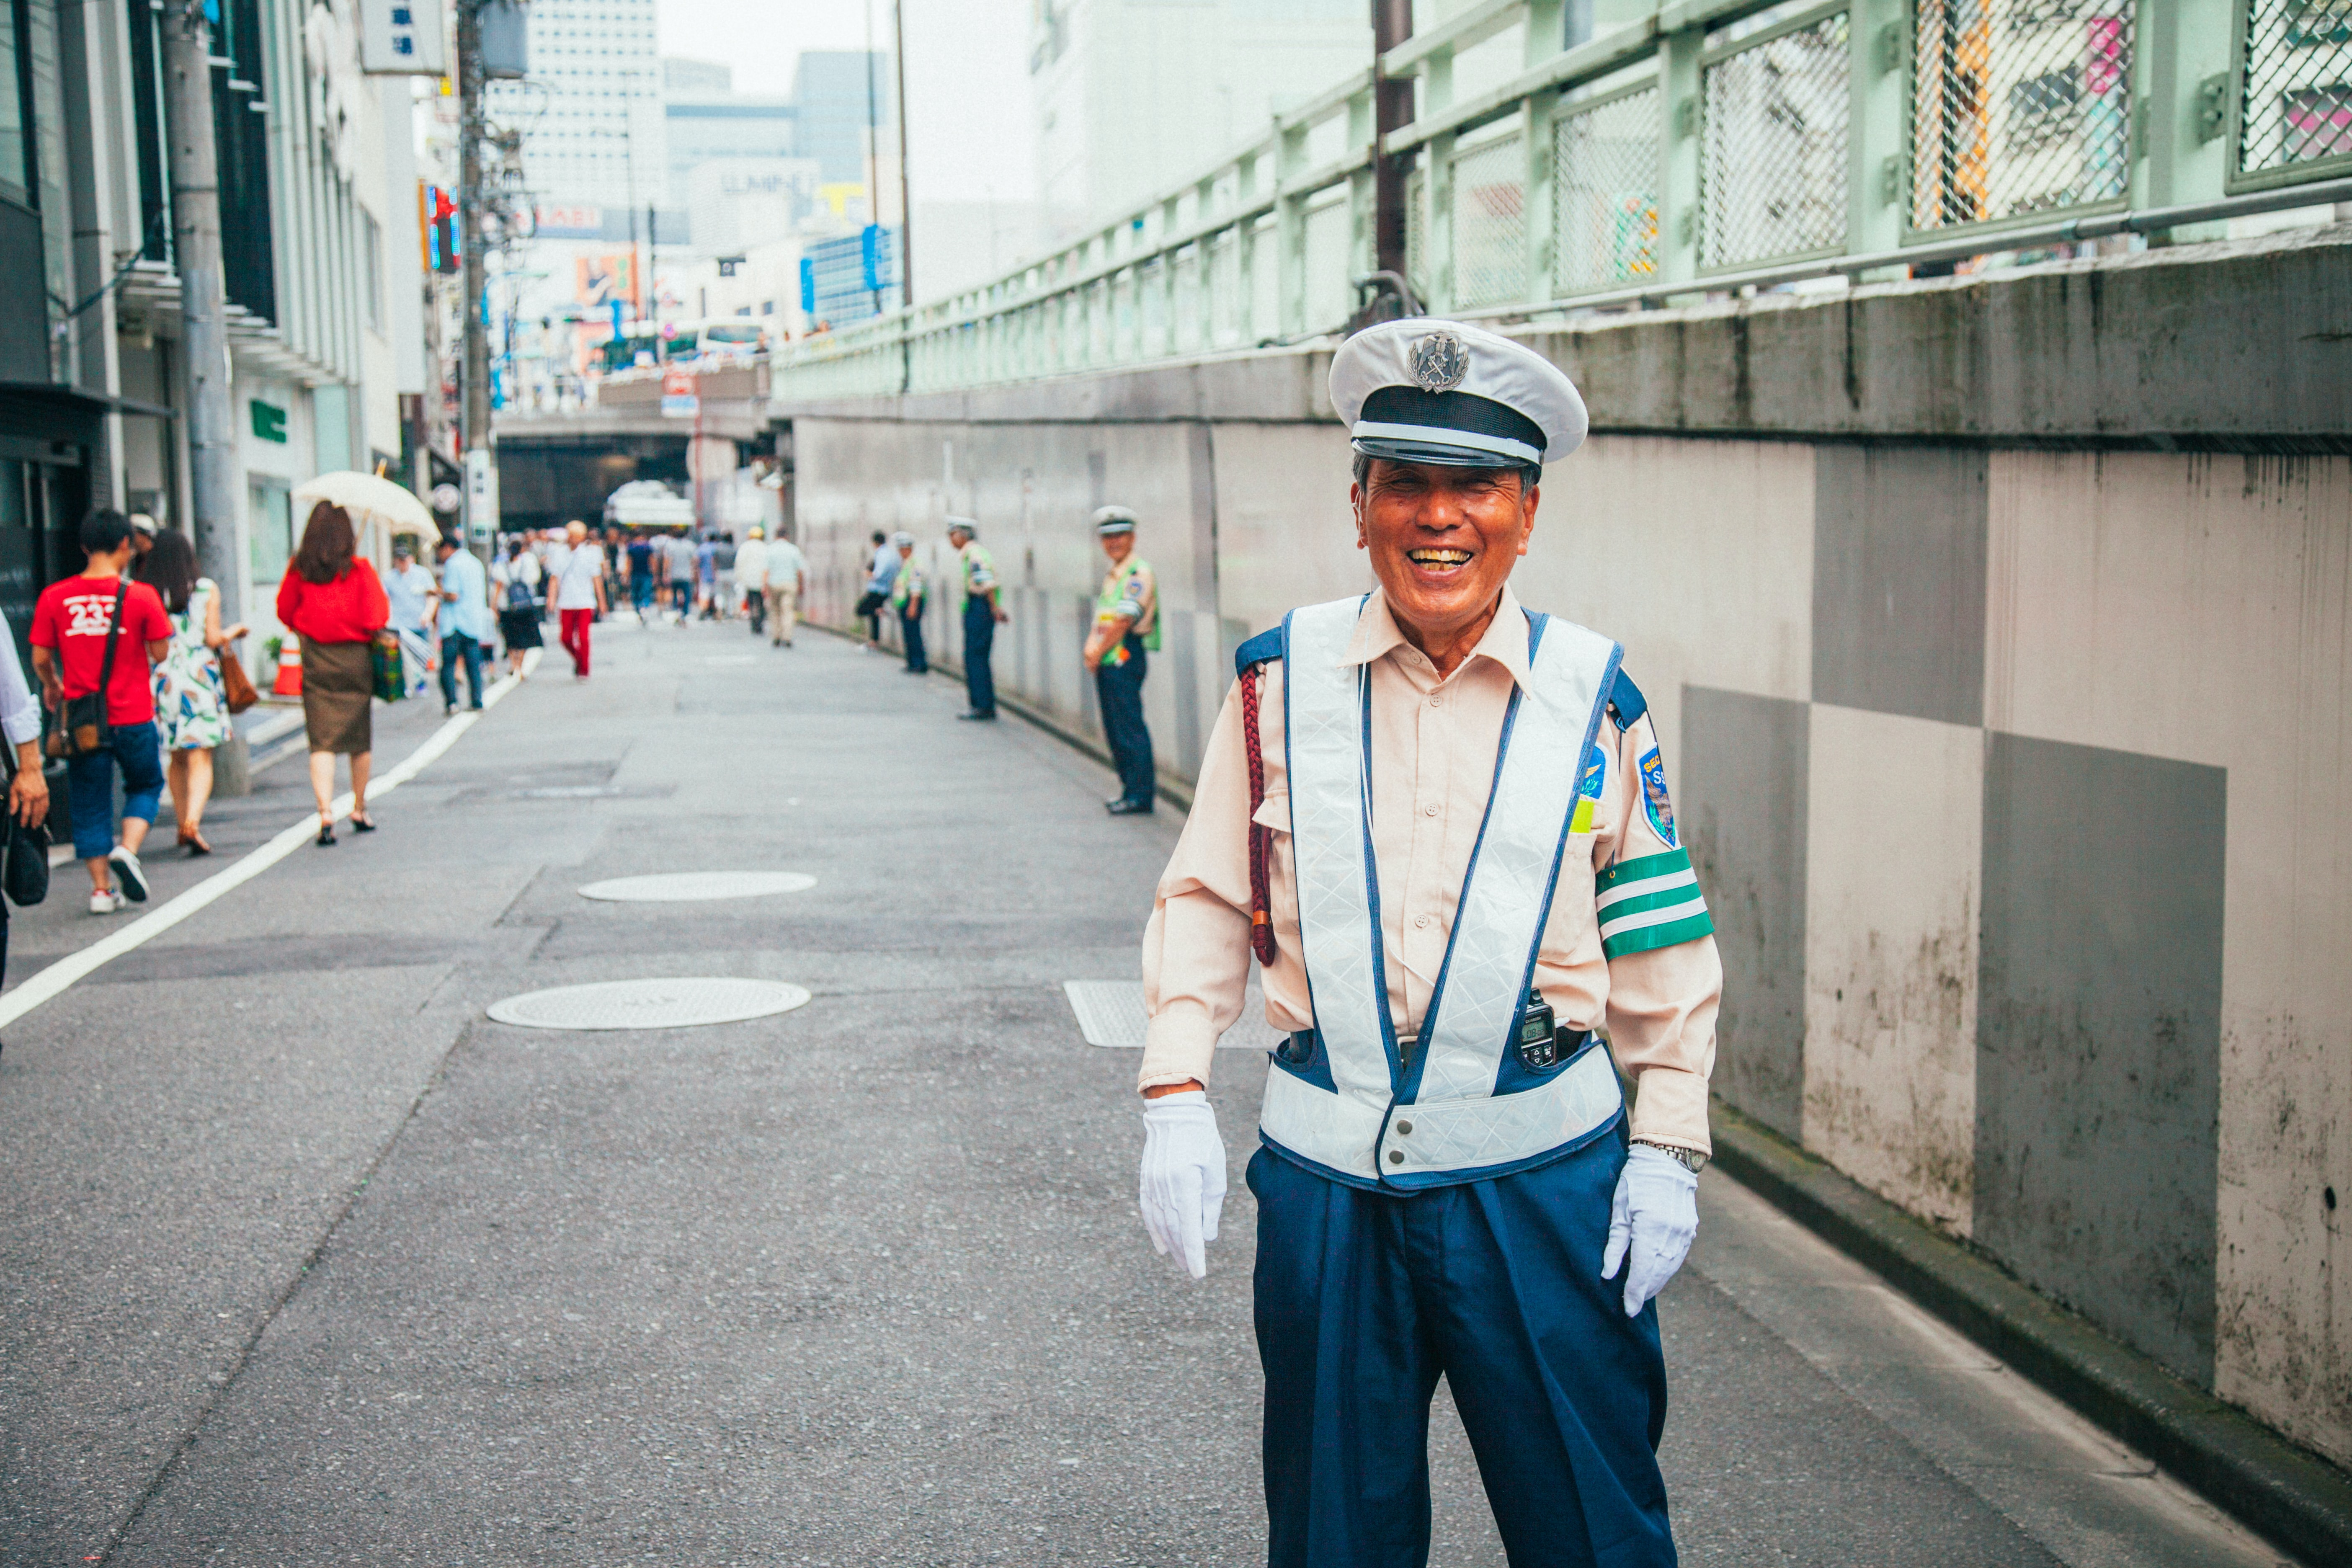 A smiling traffic cop on the street in Shinjuku Japan